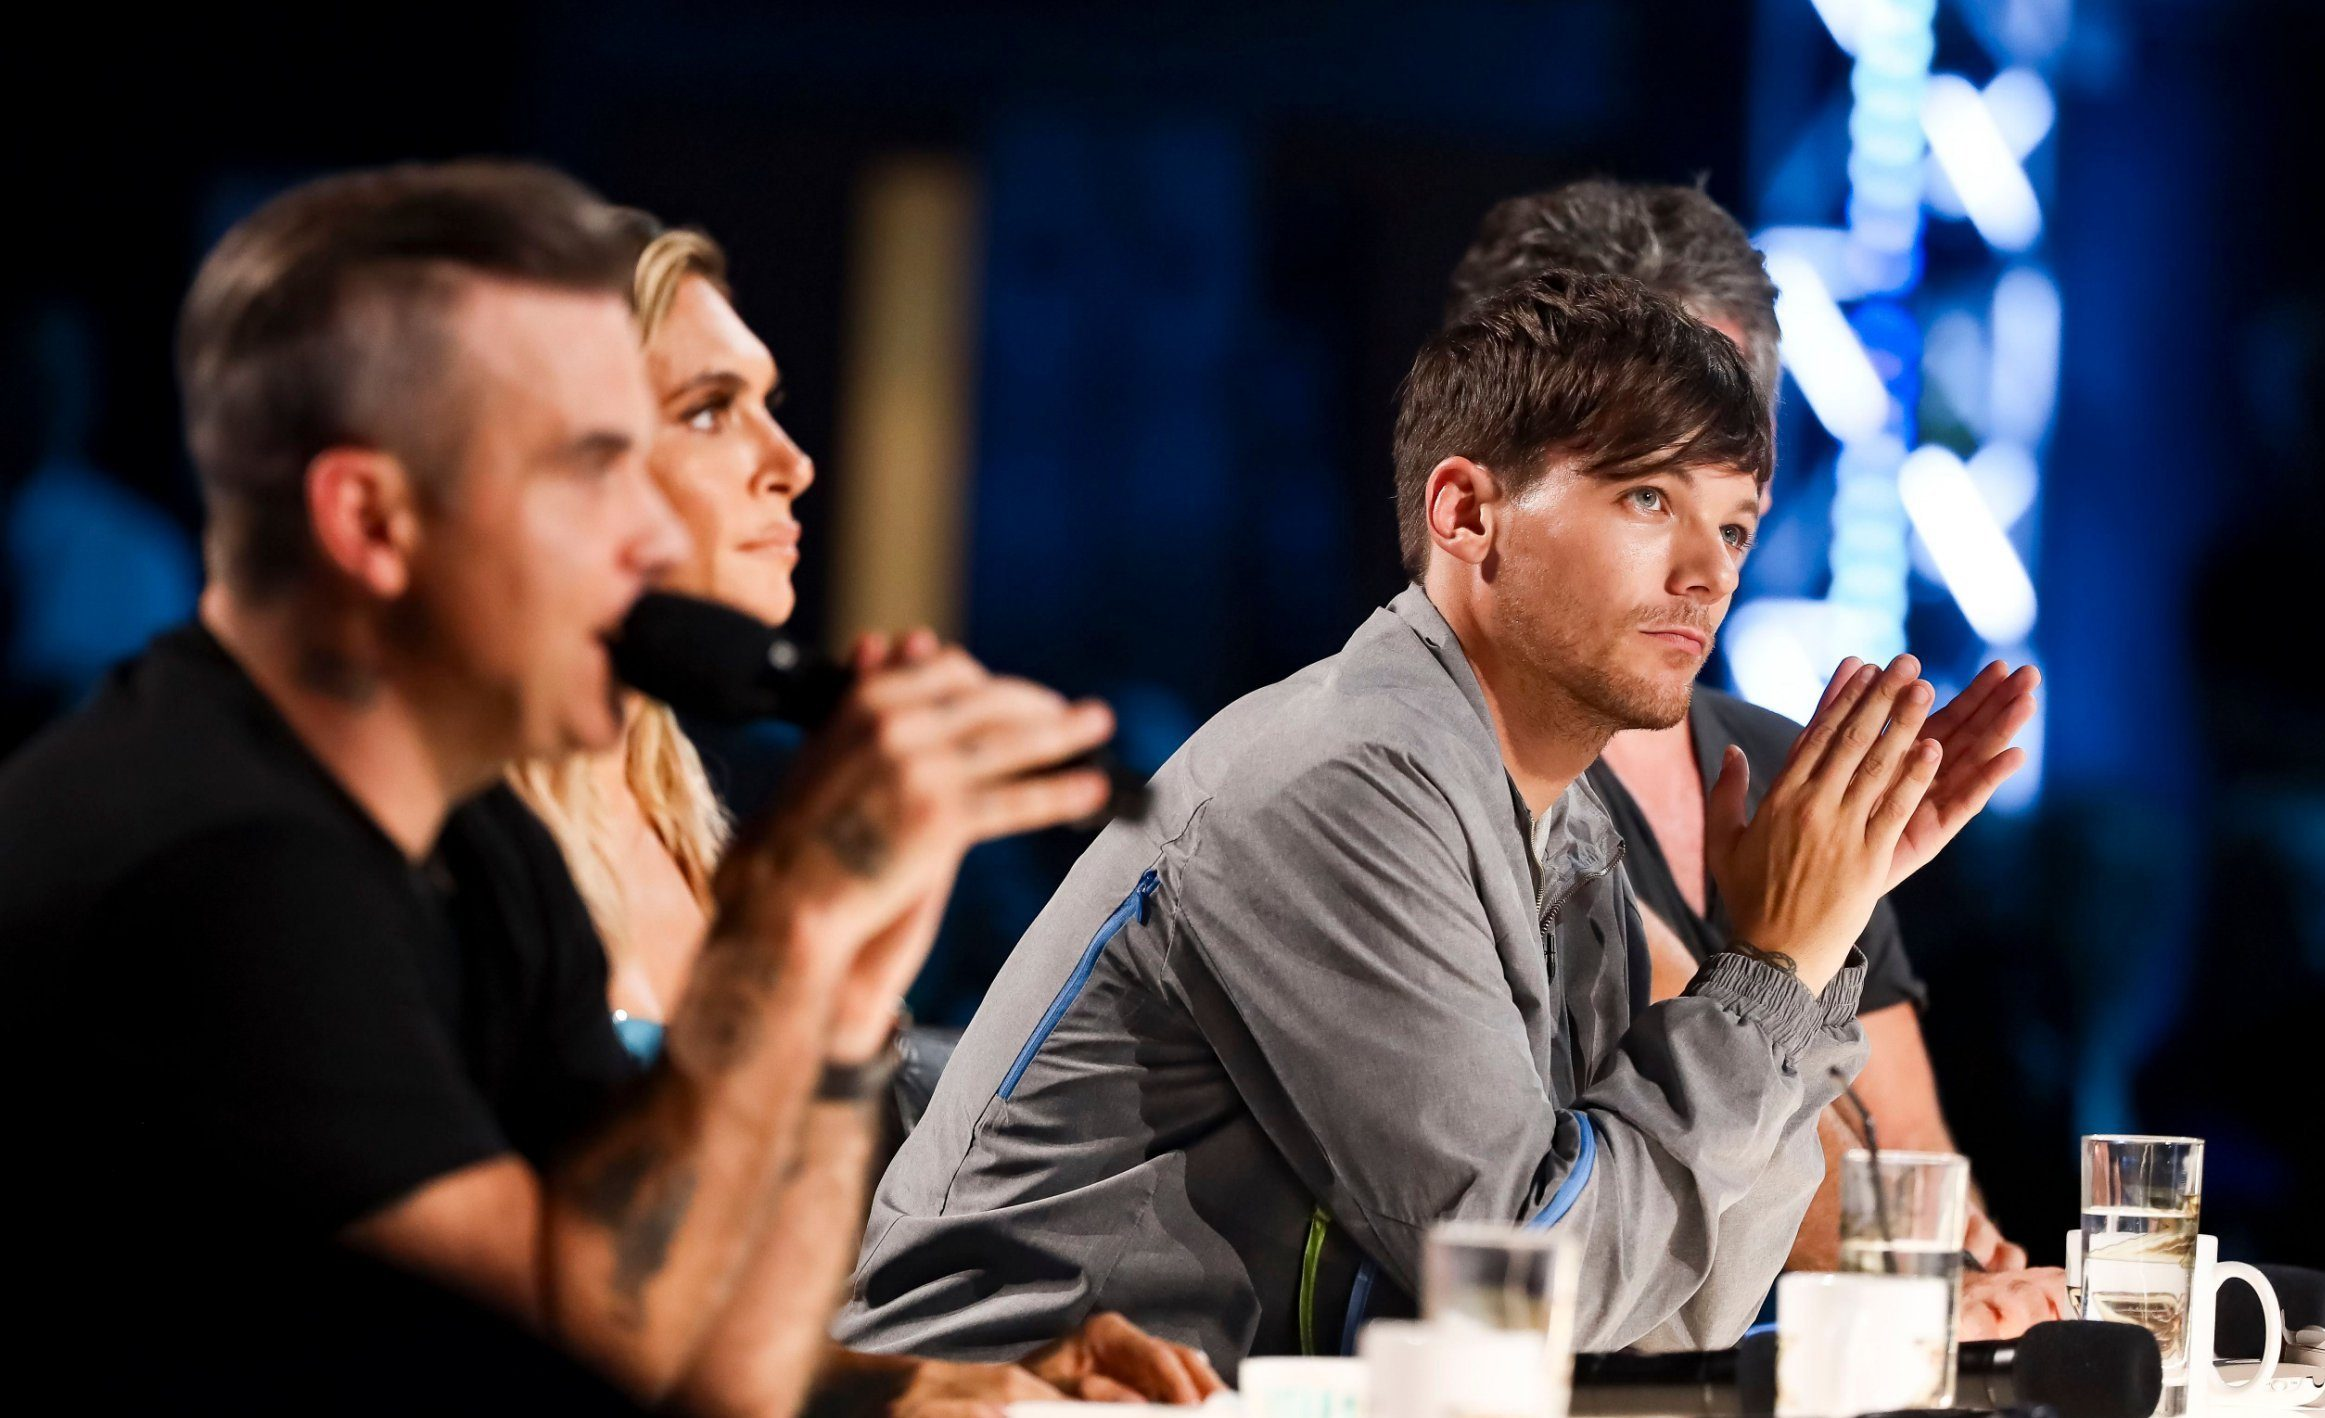 Louis Tomlinson says his return to The X Factor is 'unlikely' and Simon Cowell hasn't even asked him back